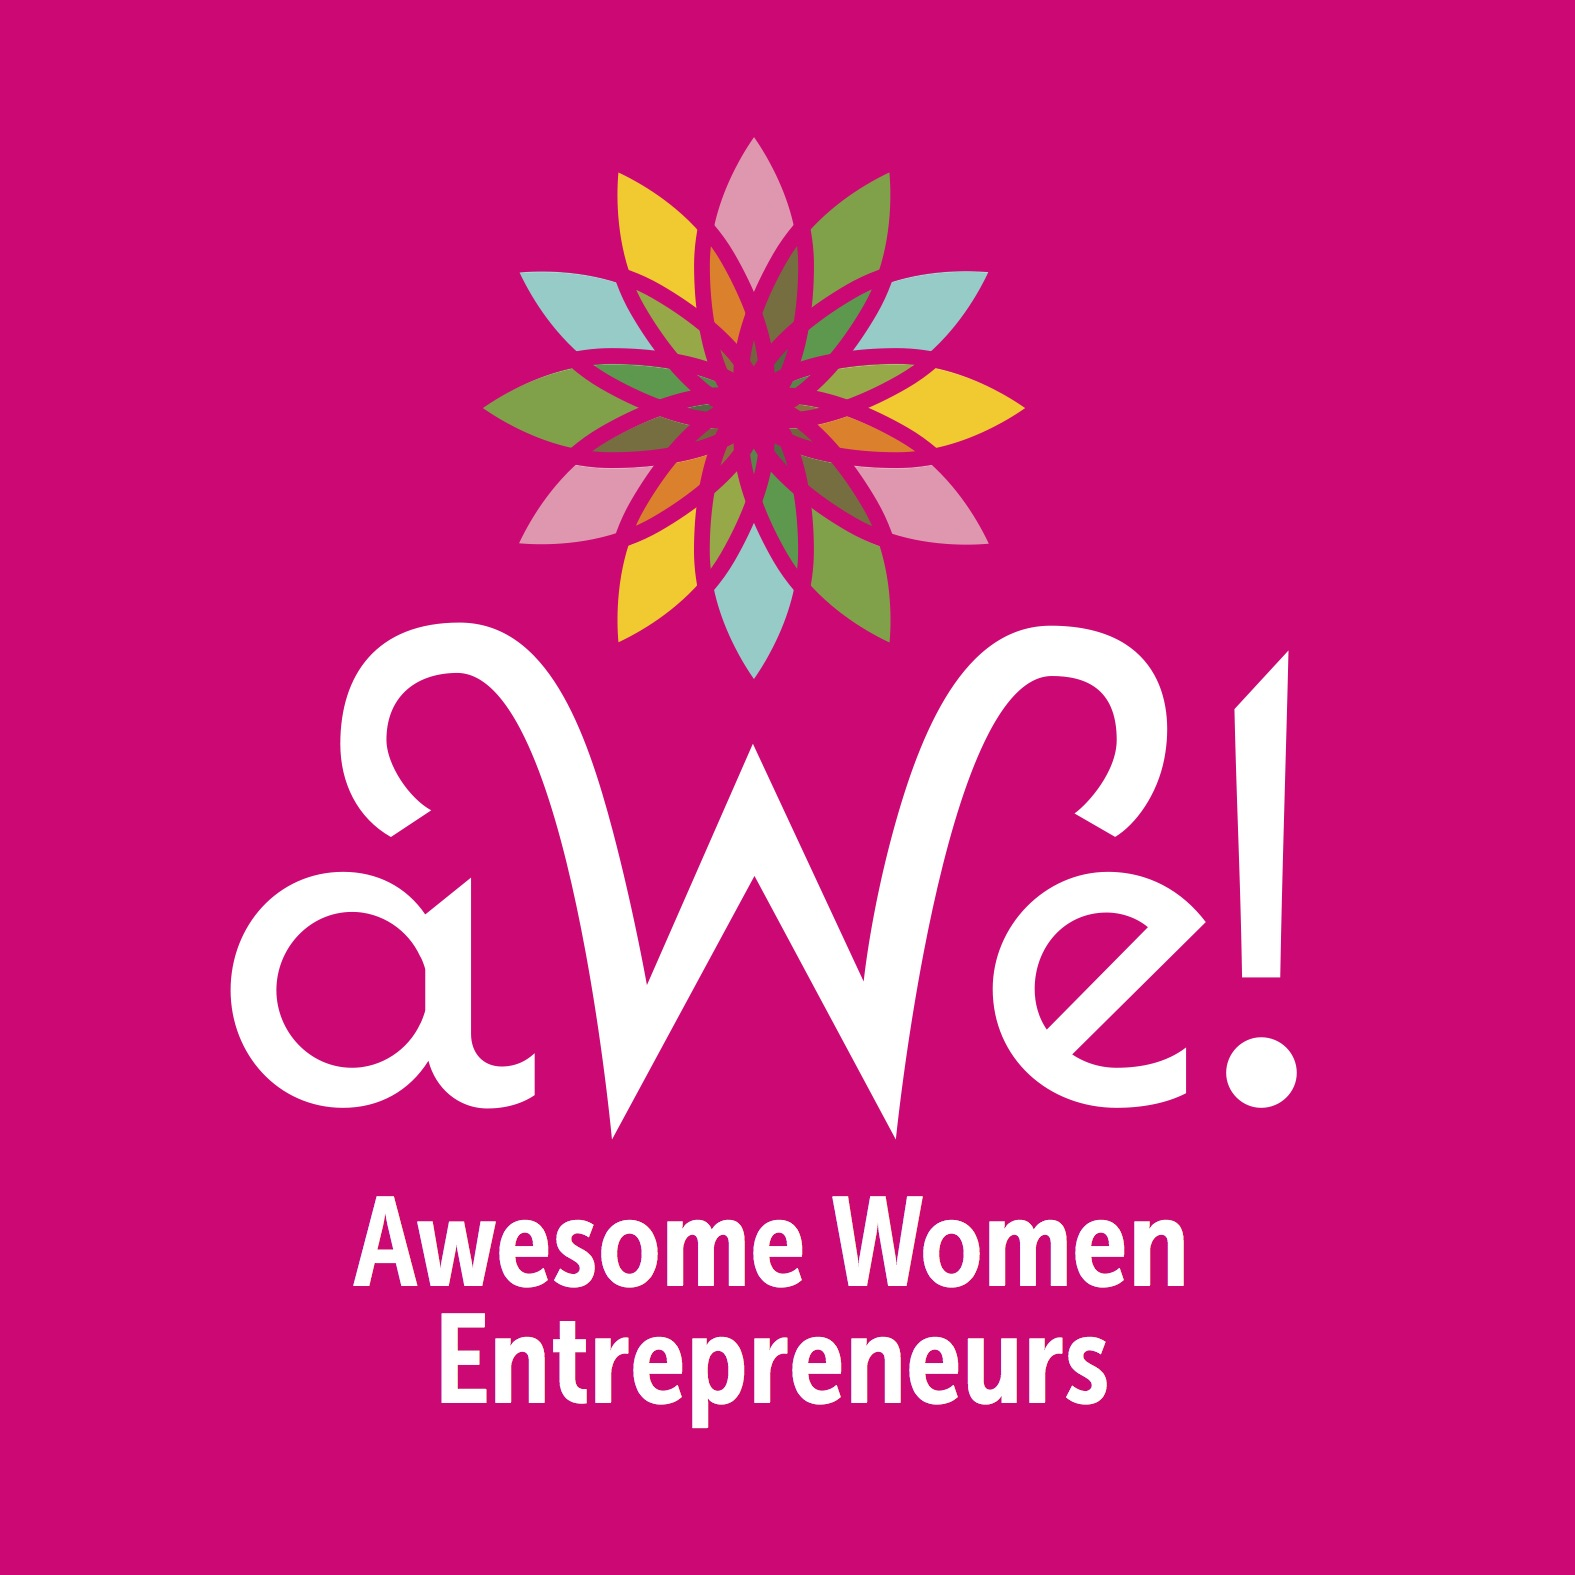 Awesome Women Entrepreneurs